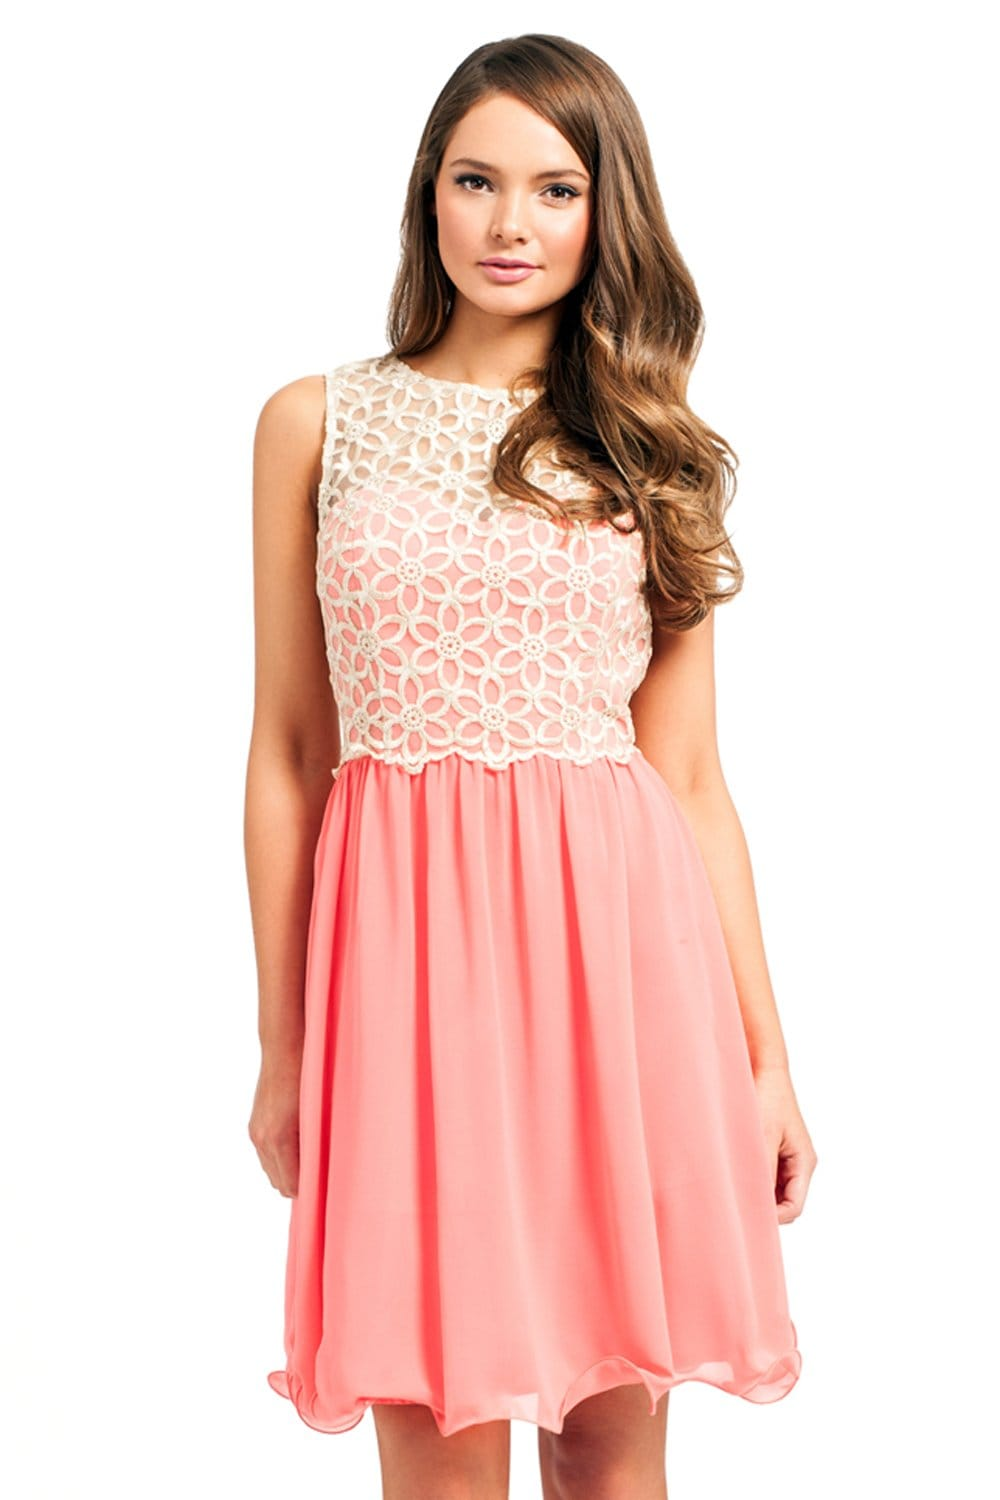 Coral & Cream Lace Cutout Detail Party Dress